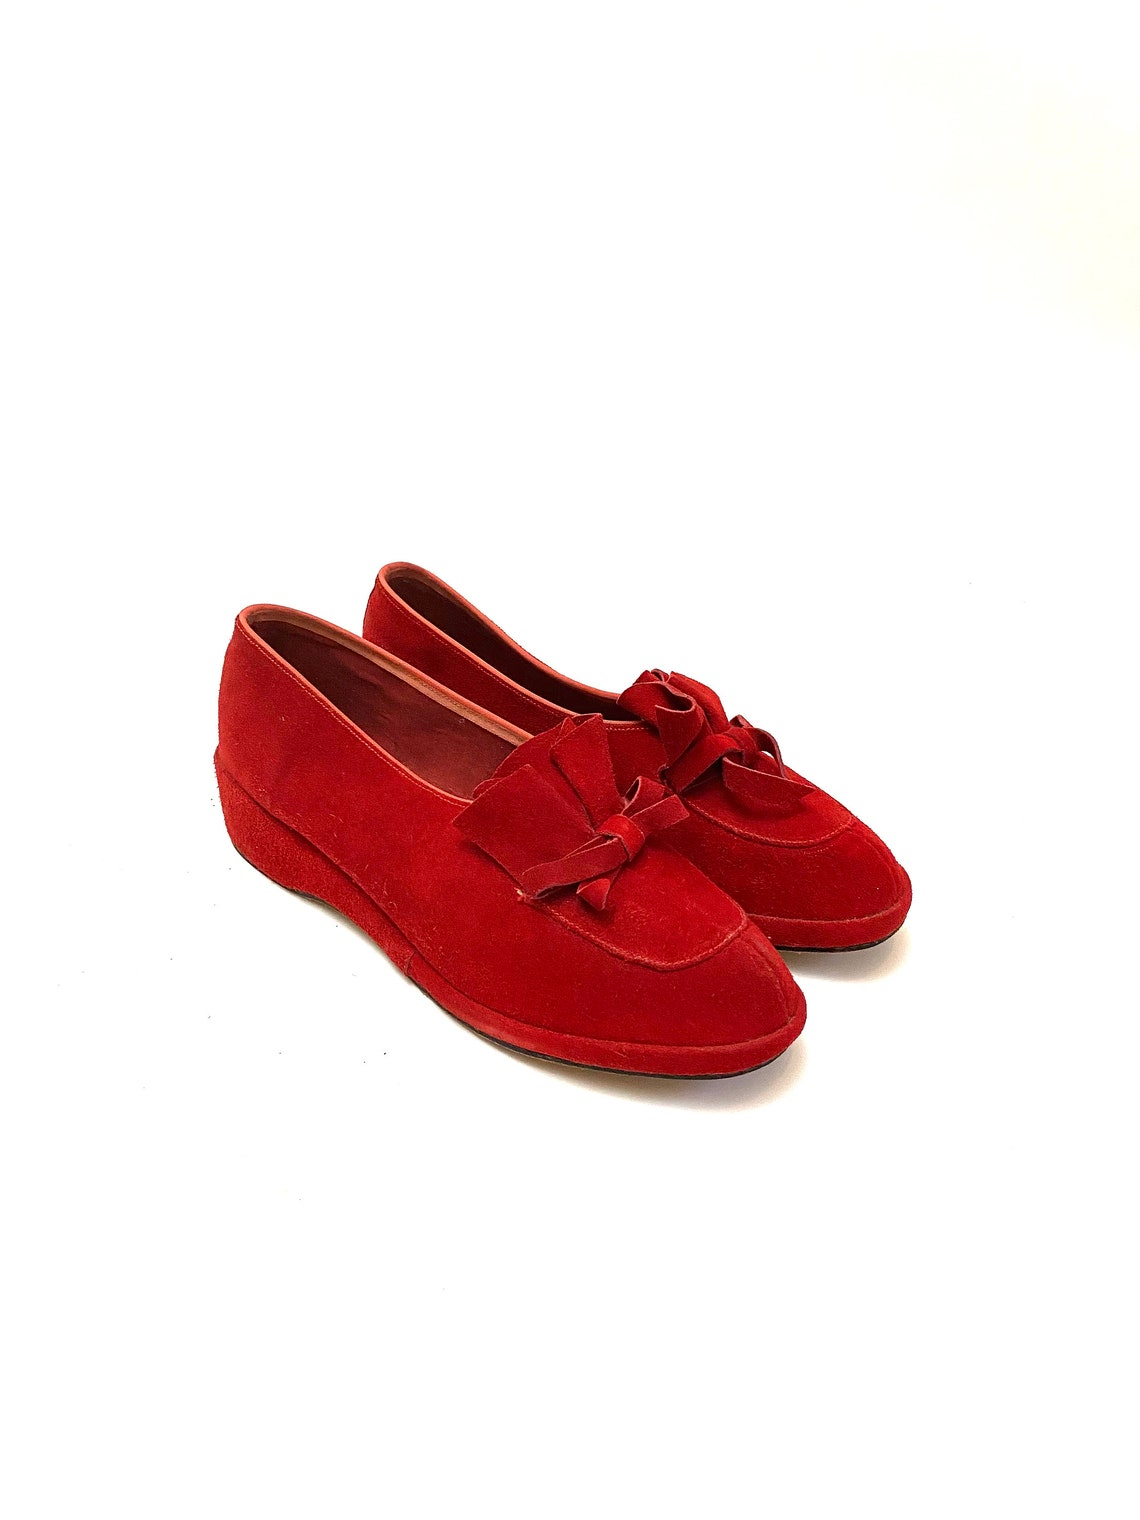 Vintage 1940 Red Suede Loafers // Slip On Rounded Toe Bow Shoes // Scarpa Originale di Daytimers Taglia 9 - Scarpe alla moda bTS3ehem t4WumF vytv53